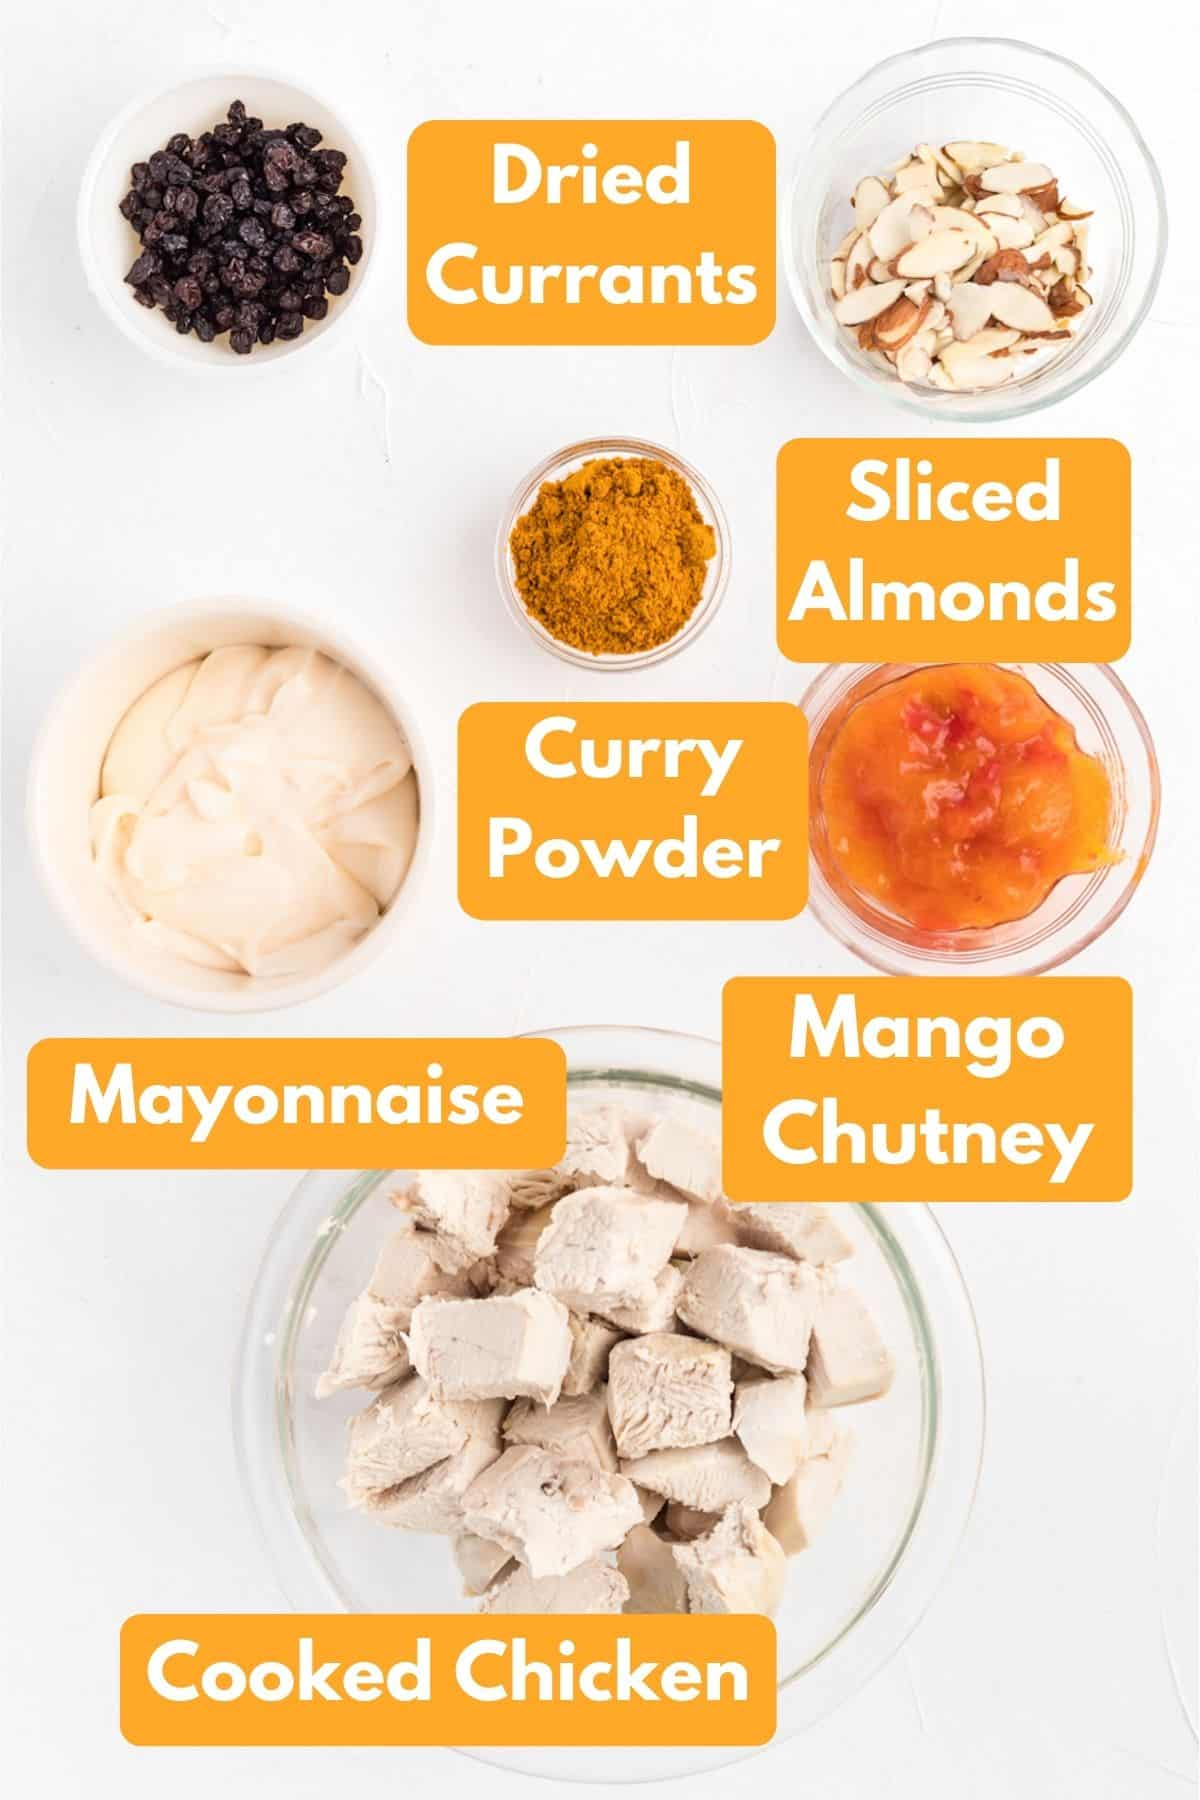 All the ingredients laid out in bowls